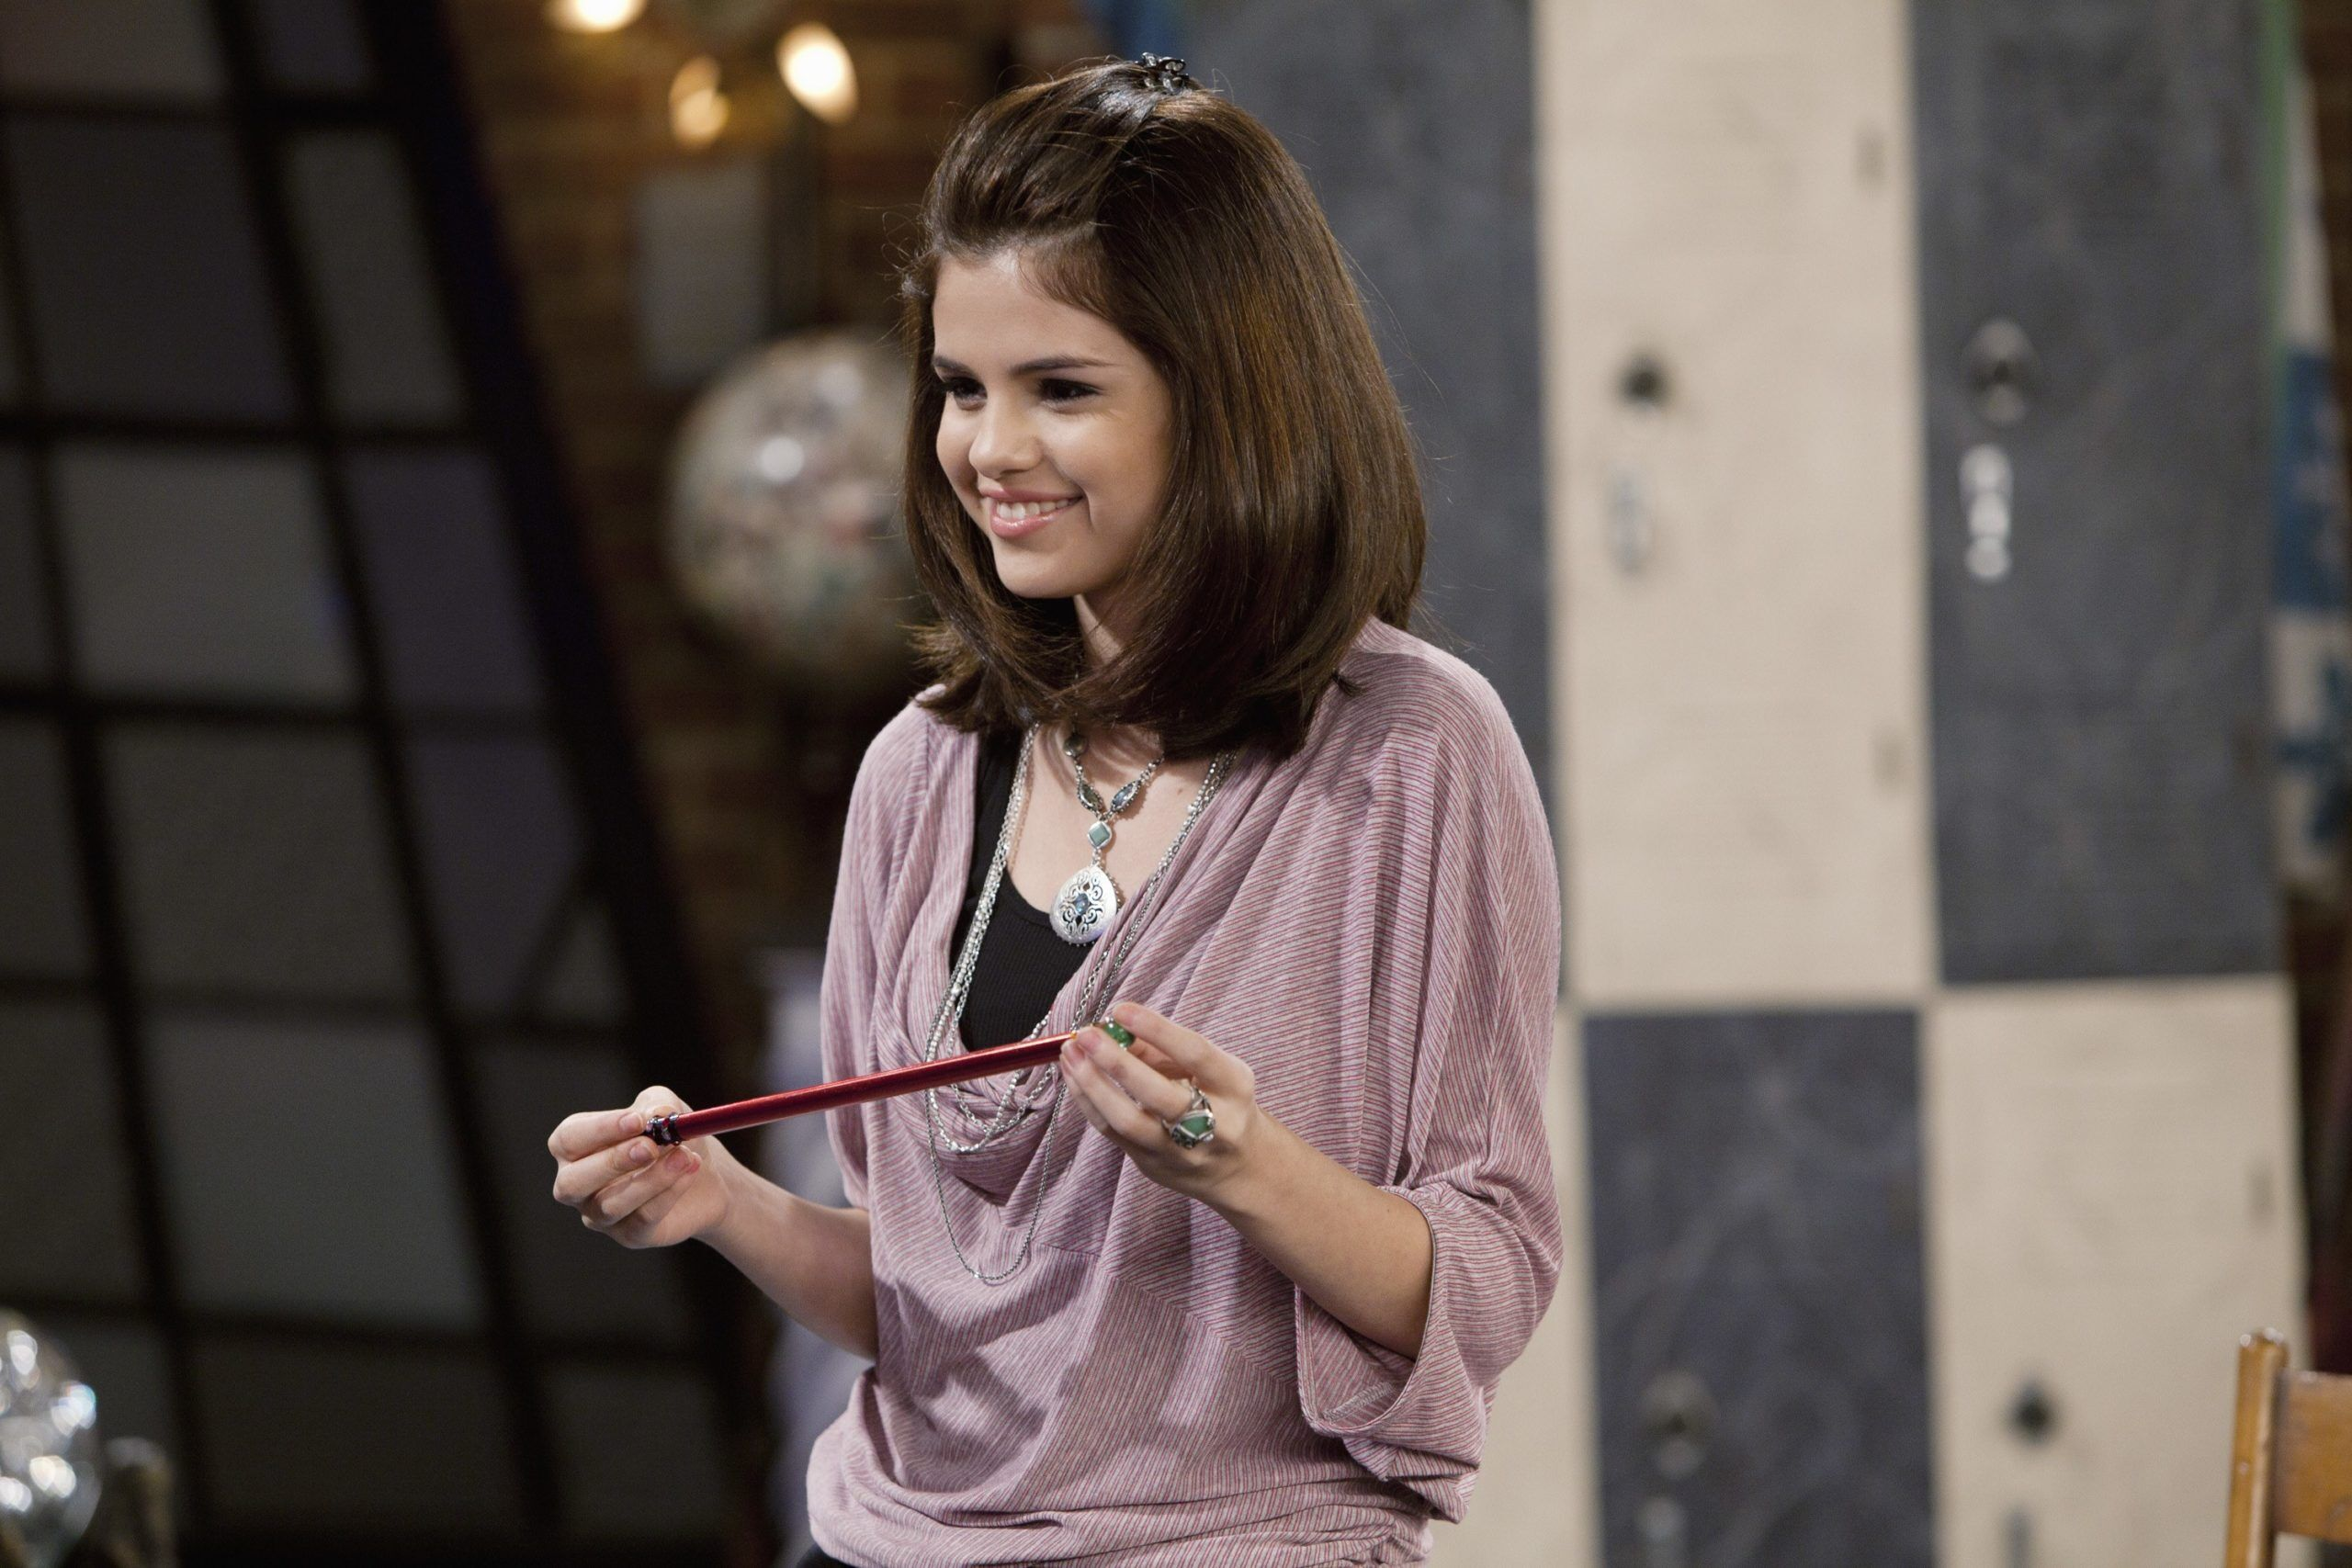 wizards-of-waverly-place_CDHirJ